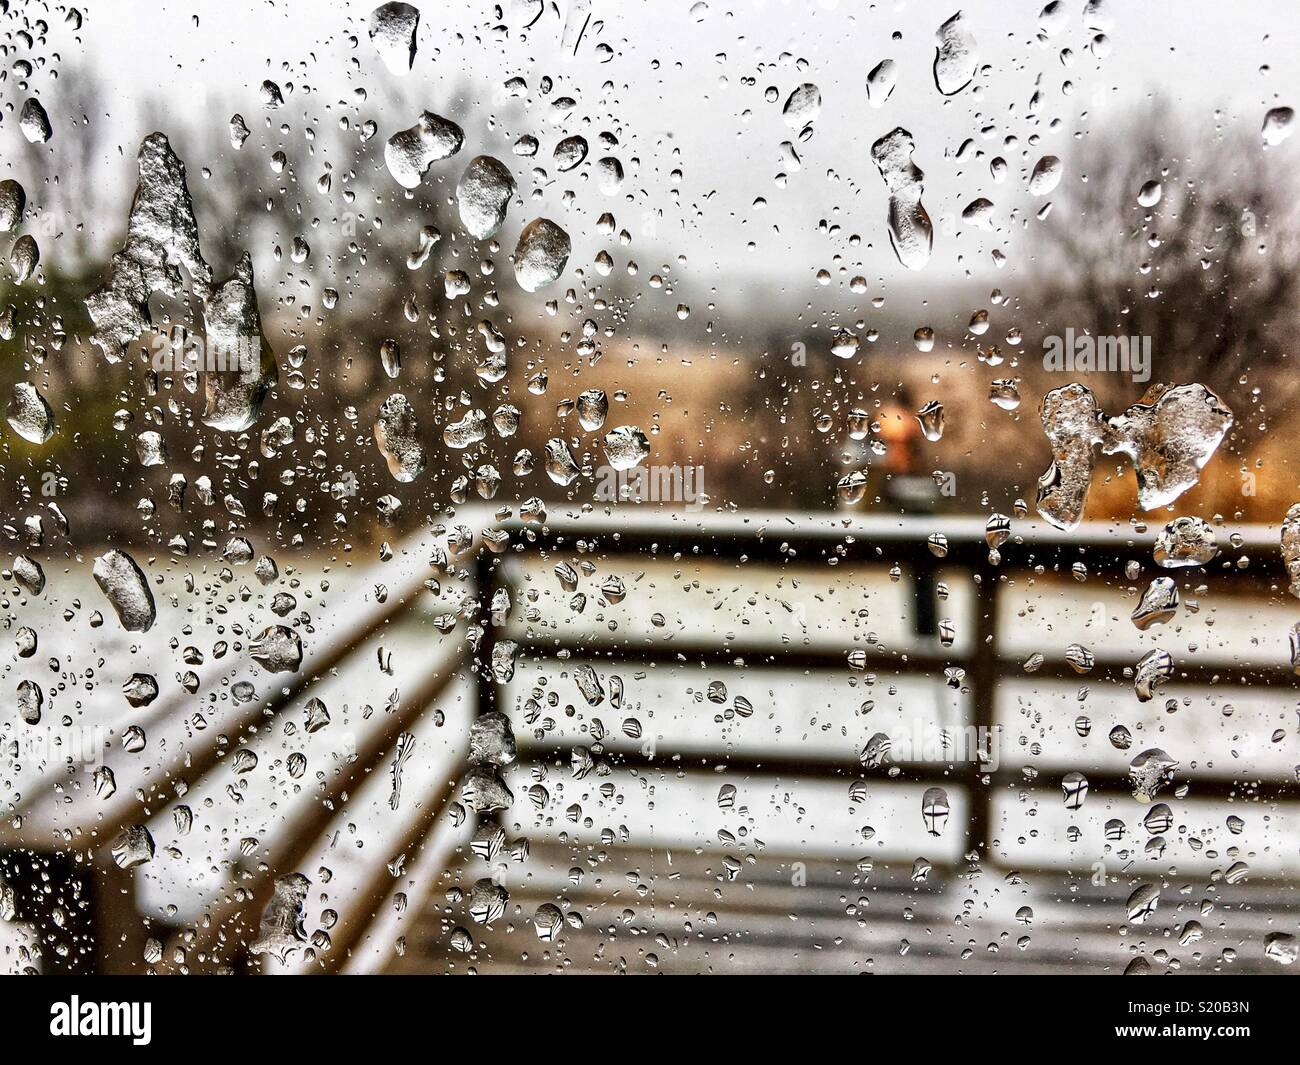 Ice on a window during ice storm - Stock Image